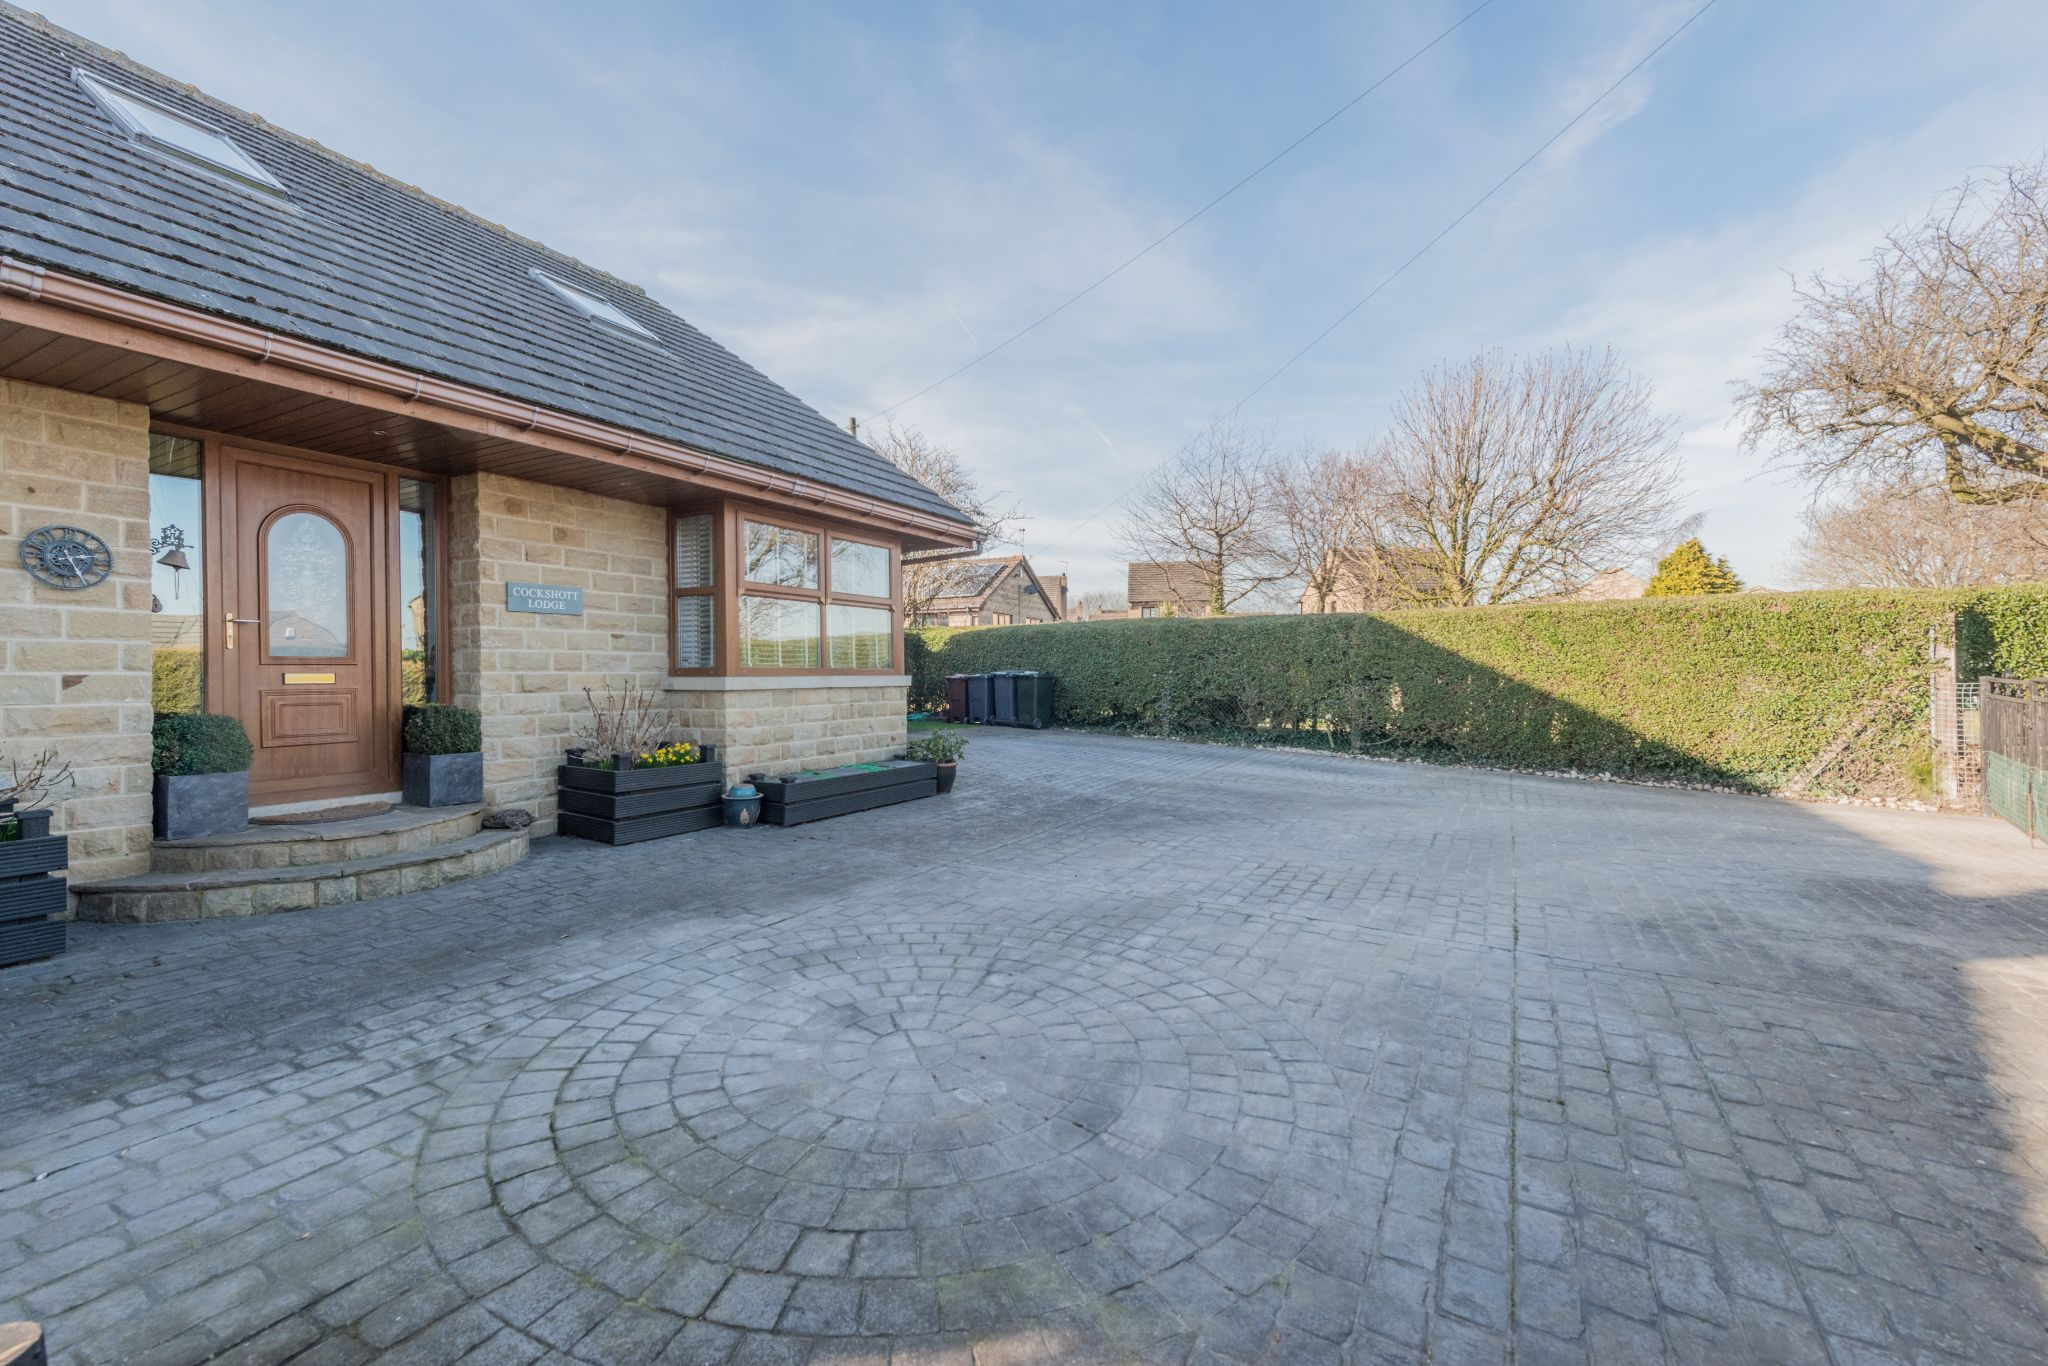 3 Bedroom Detached House For Sale - Photograph 34